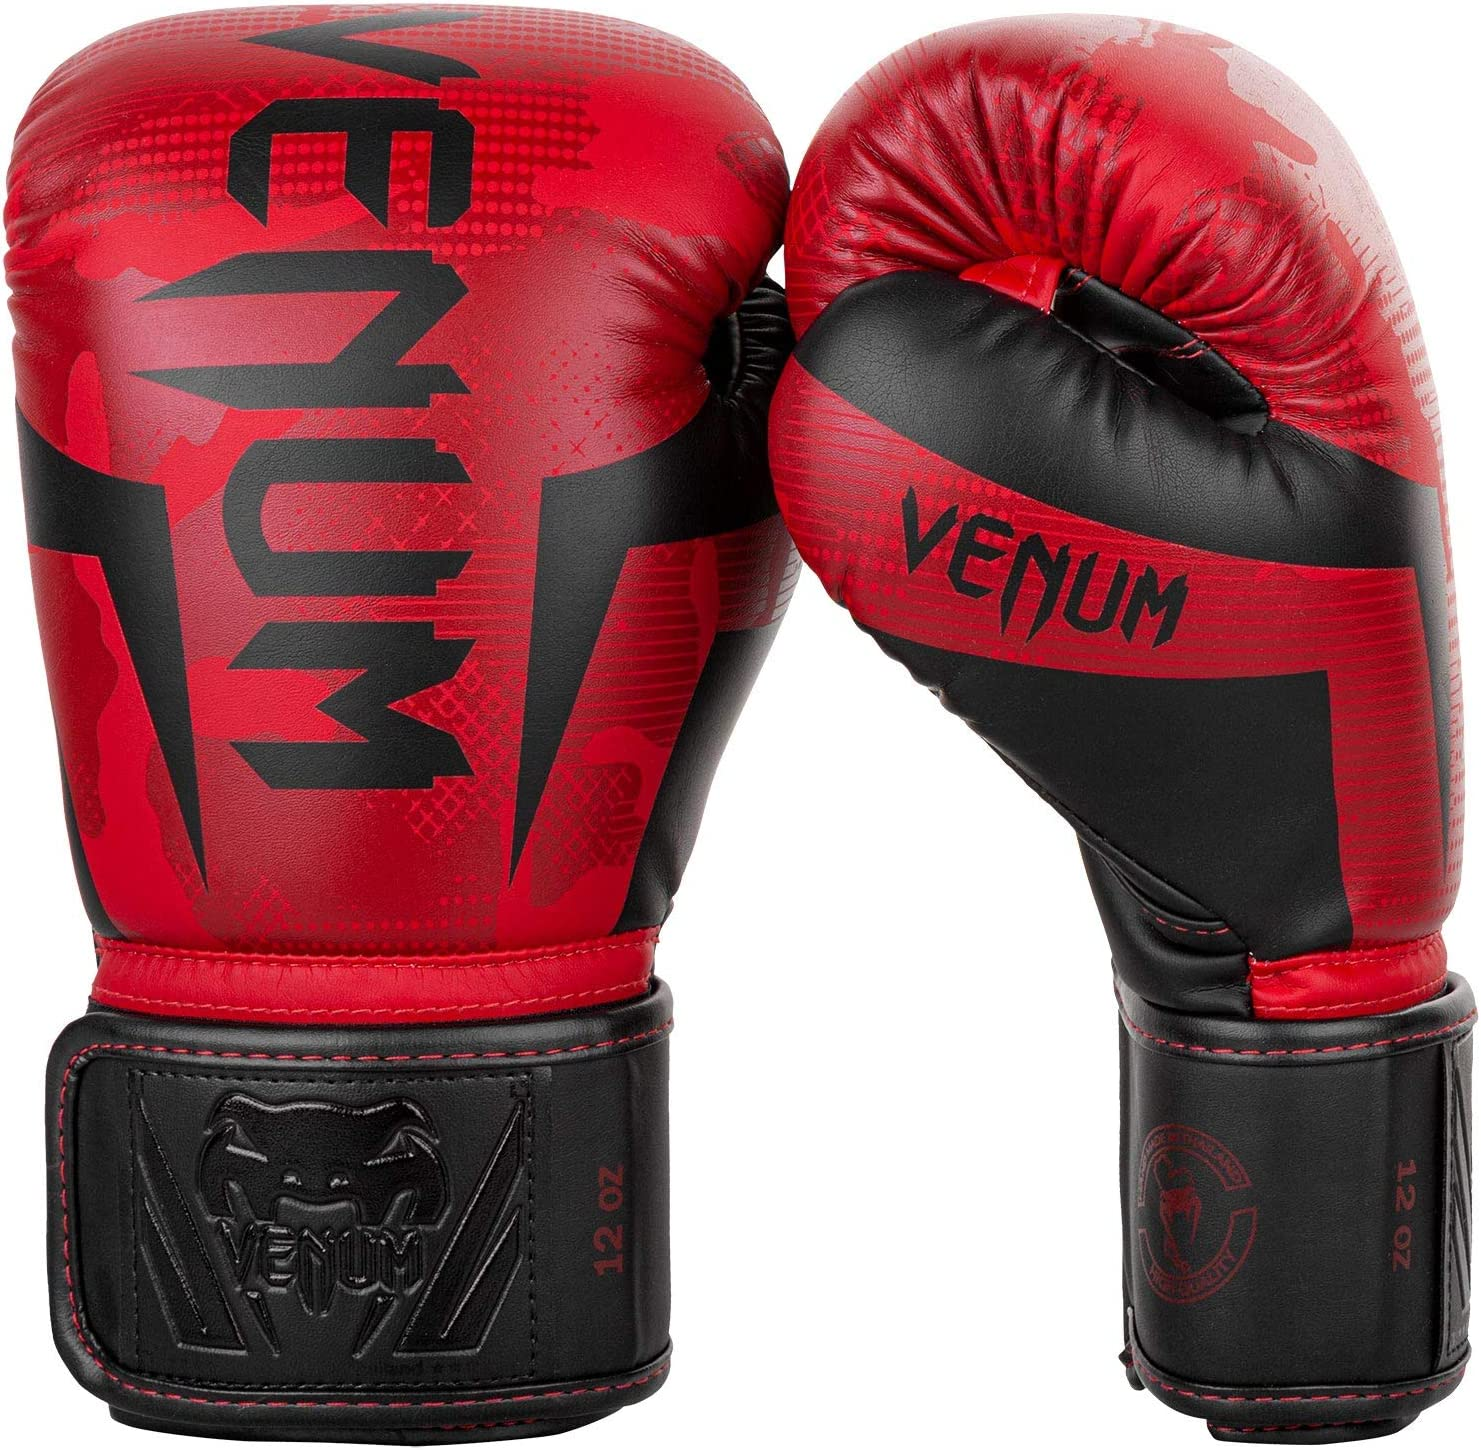 Venum Elite Challenge the lowest price of Japan 70% OFF Outlet ☆ Gloves Boxing